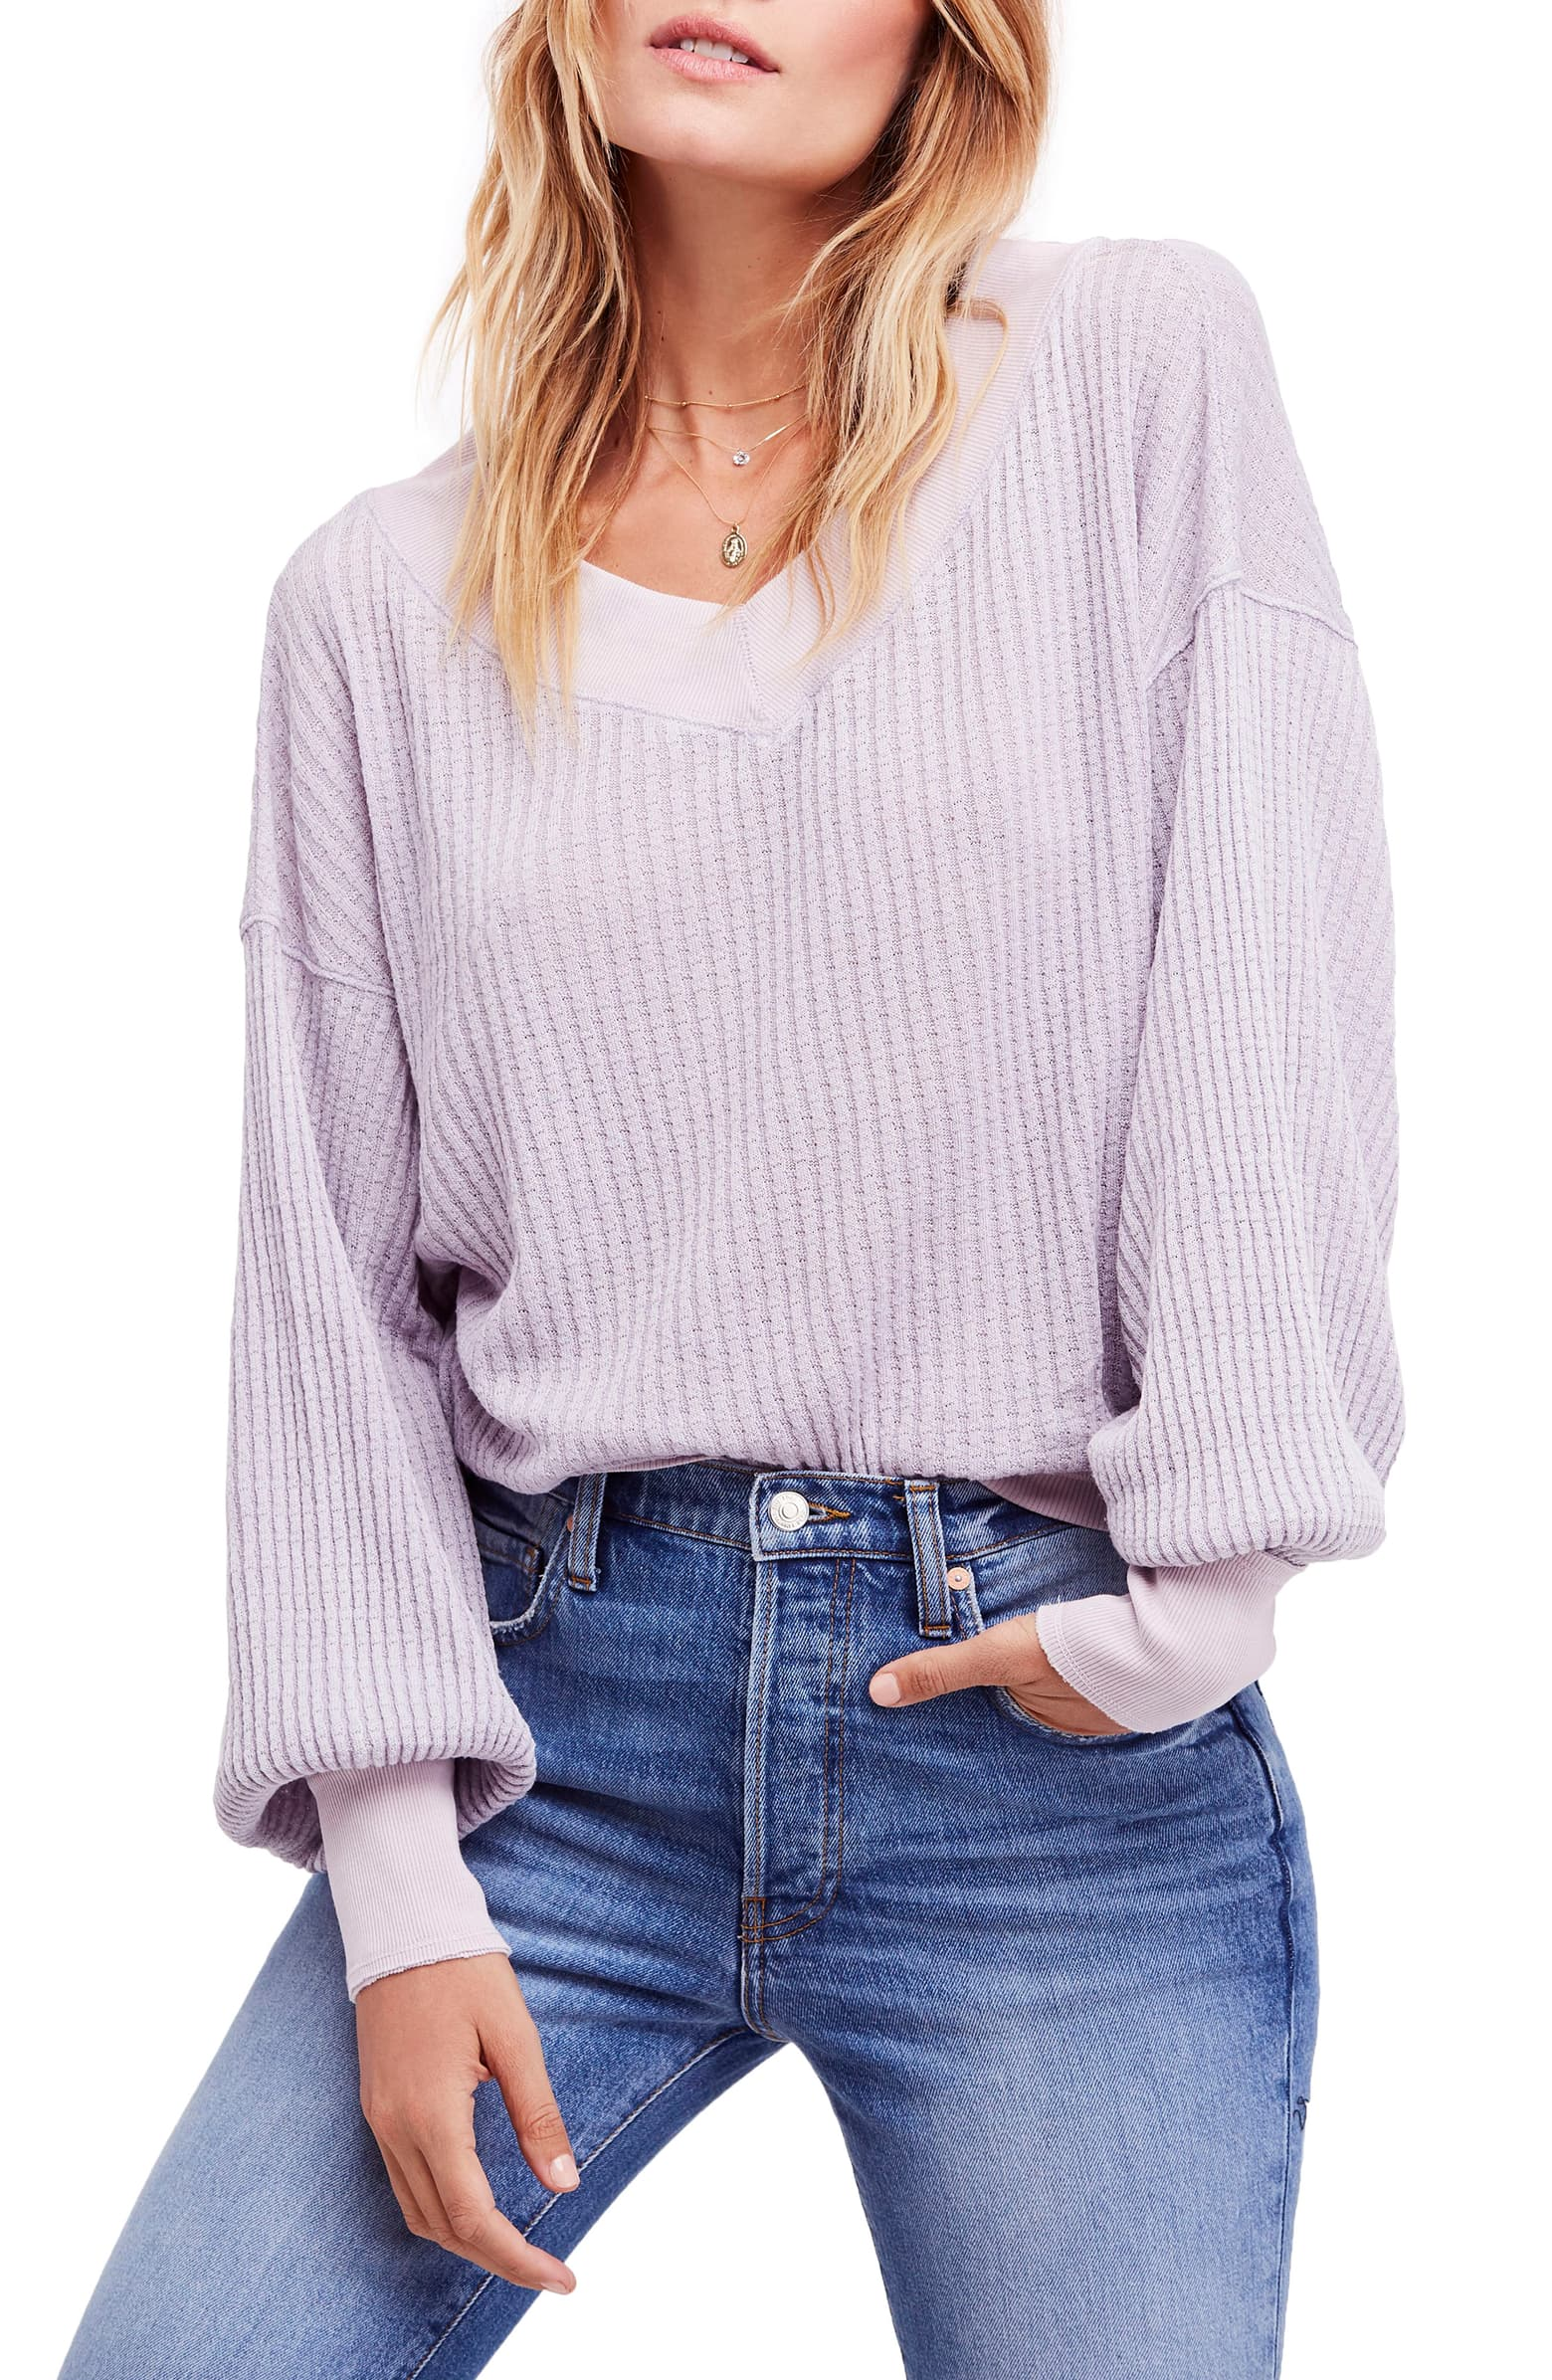 Nordstrom Anniversary Sale - #NSALE - Nordstrom Sale - Fall Fashion - Women's Fashion - Sabby Style-11